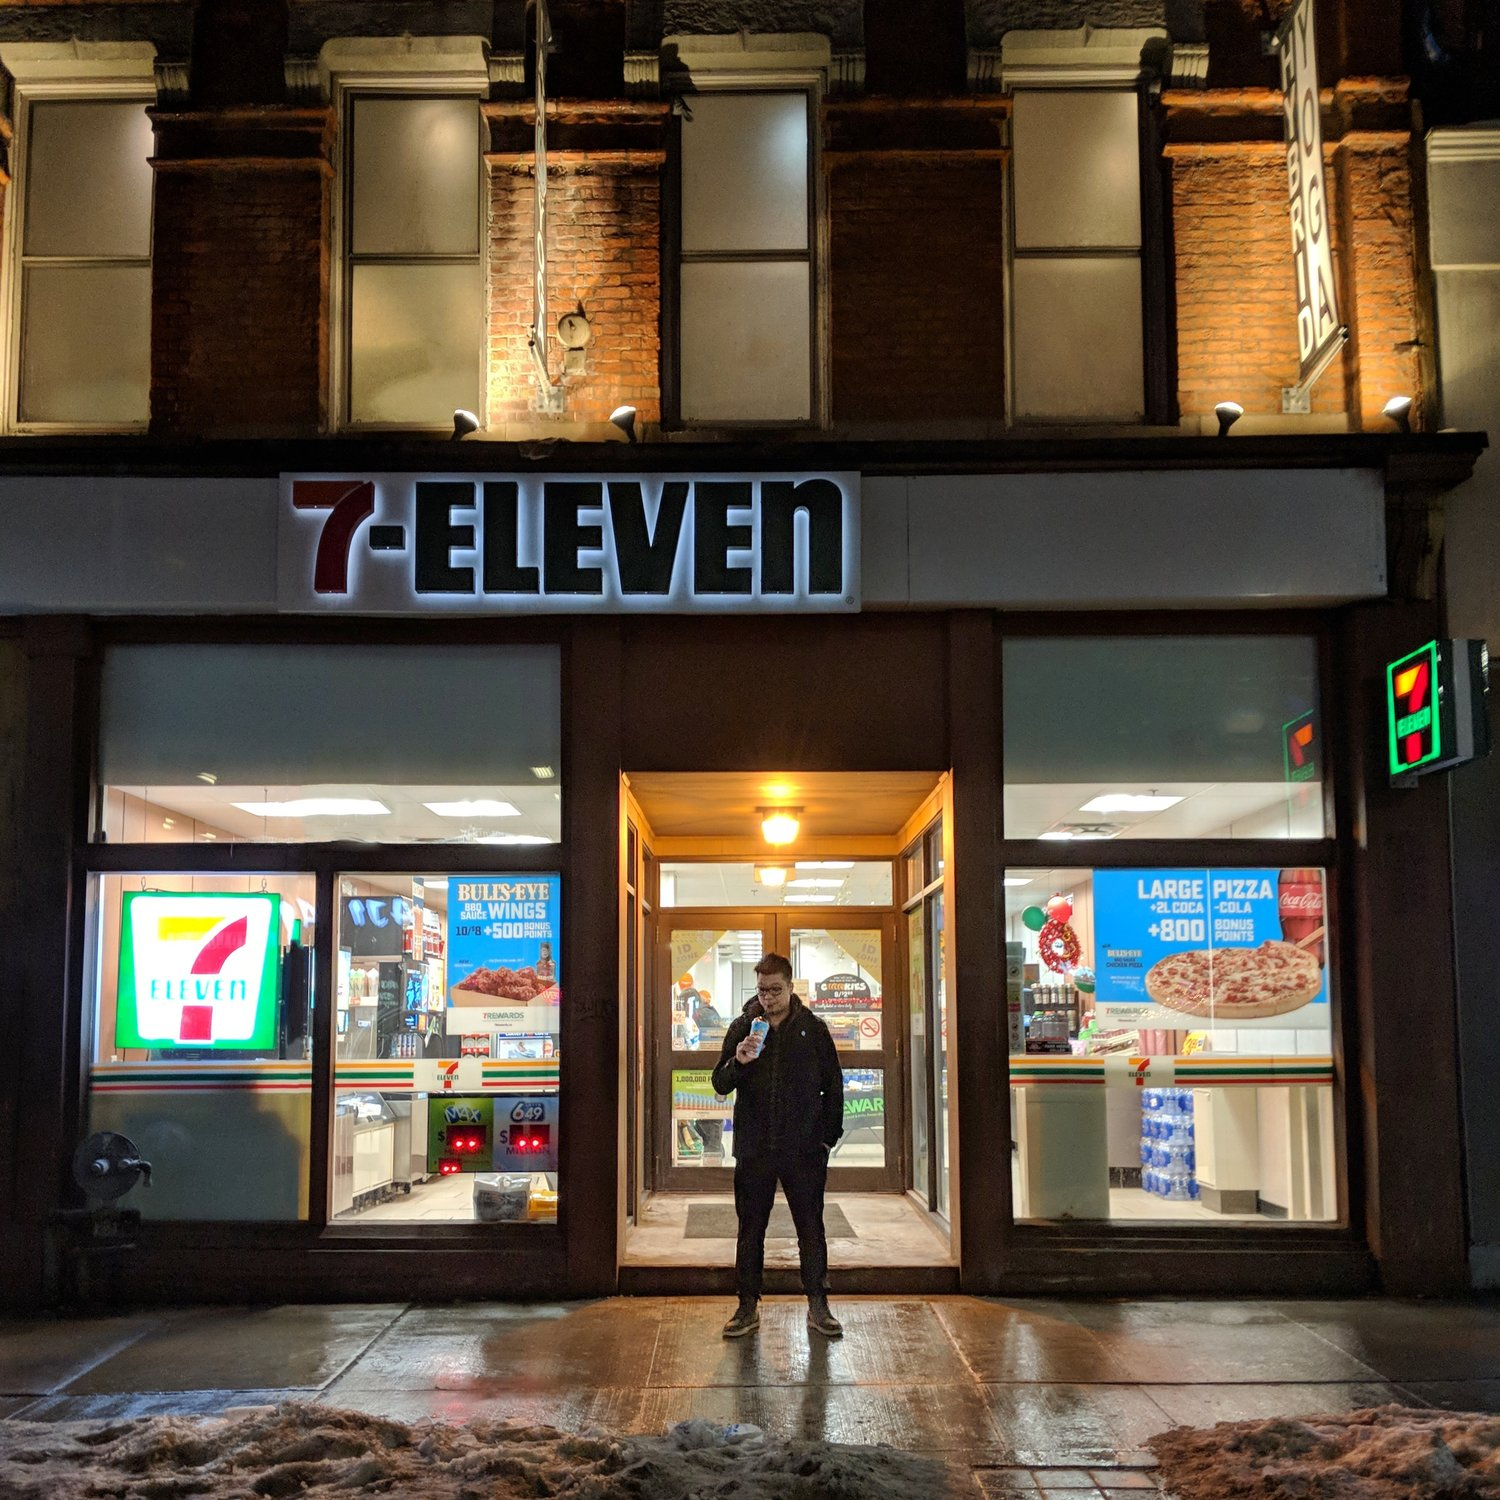 7-Eleven Canada x Good Food Toronto: Win 1 Million